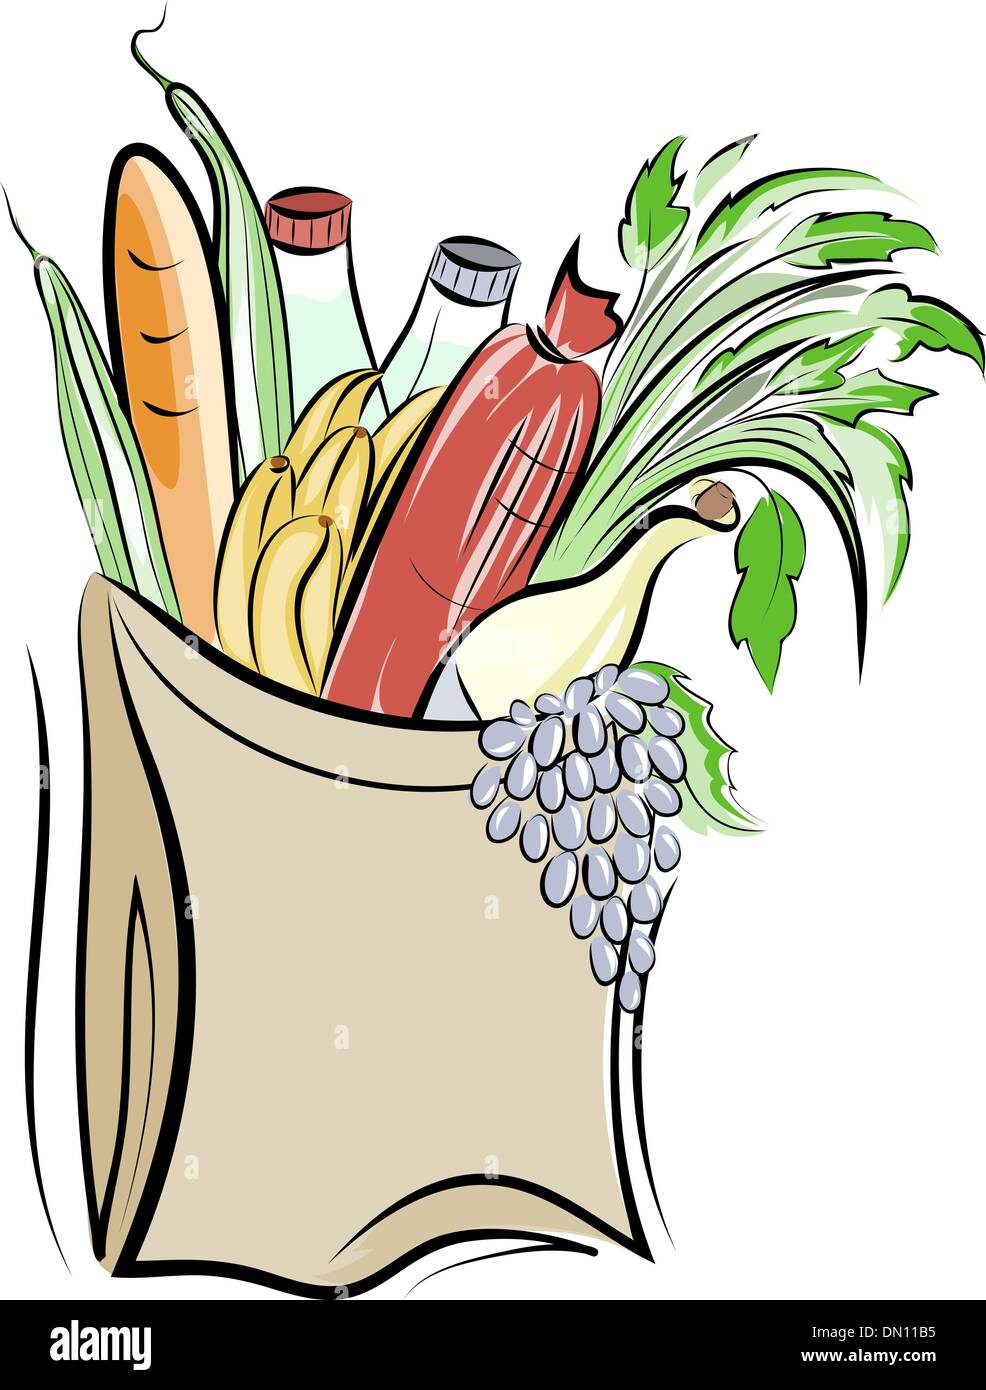 Paper bag with foods - Stock Vector